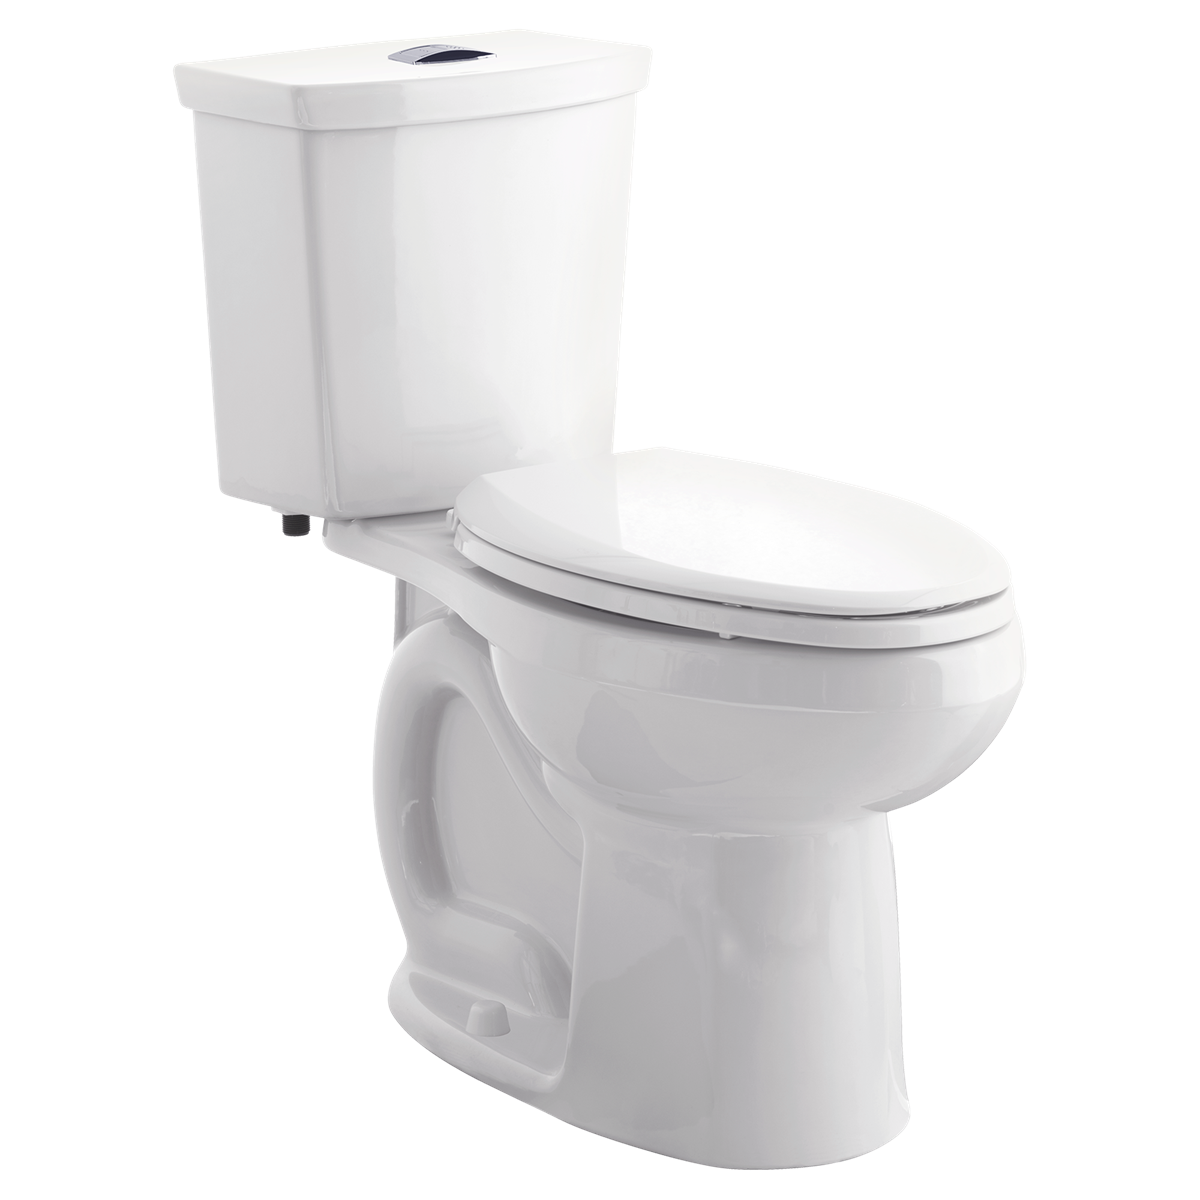 Cadet 3 Dual Flush Right Height Elongated Toilet Dual Flush Toilet Toilet Toilet Installation